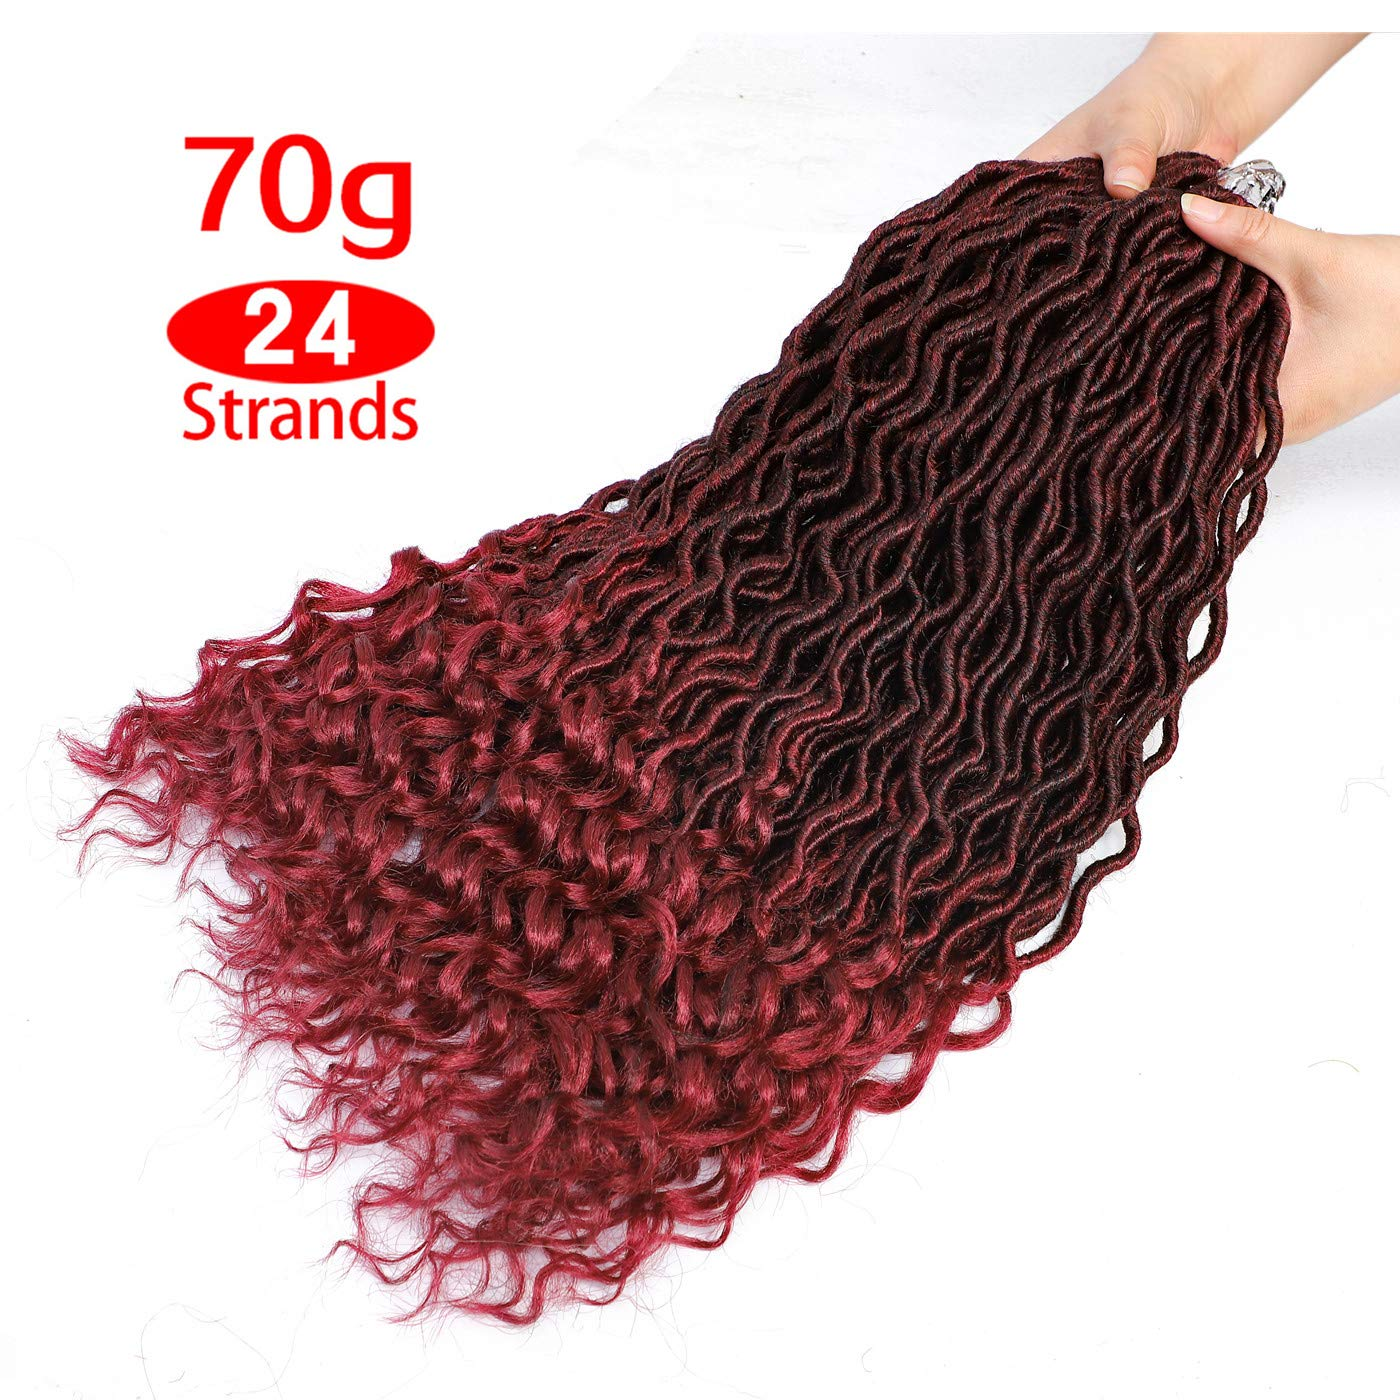 Karida 6Pcs/Lot Curly Faux Locs Crochet Hair Deep Wave Braiding Hair With Curly Ends Crochet Goddess Locs Synthetic Braids Hair Extensions (18inch, T1B/Bug)